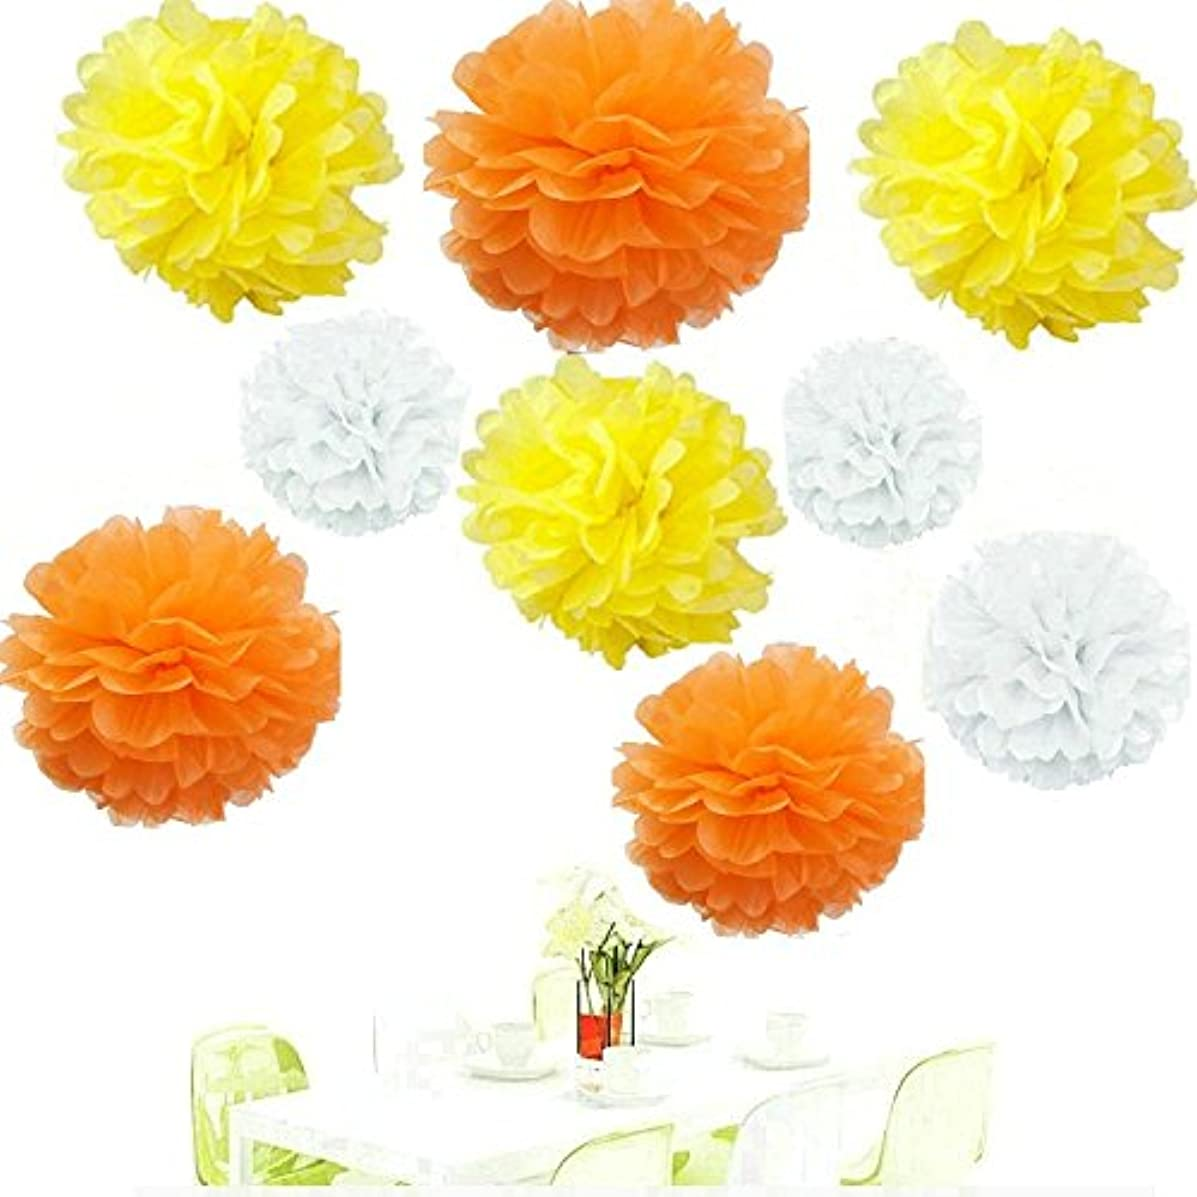 Since ? 18pcs Mixed White Orange Yellow Tissue Papper Pom Poms Pompoms Paper Flower Balls Wedding Birthday Party Decoration